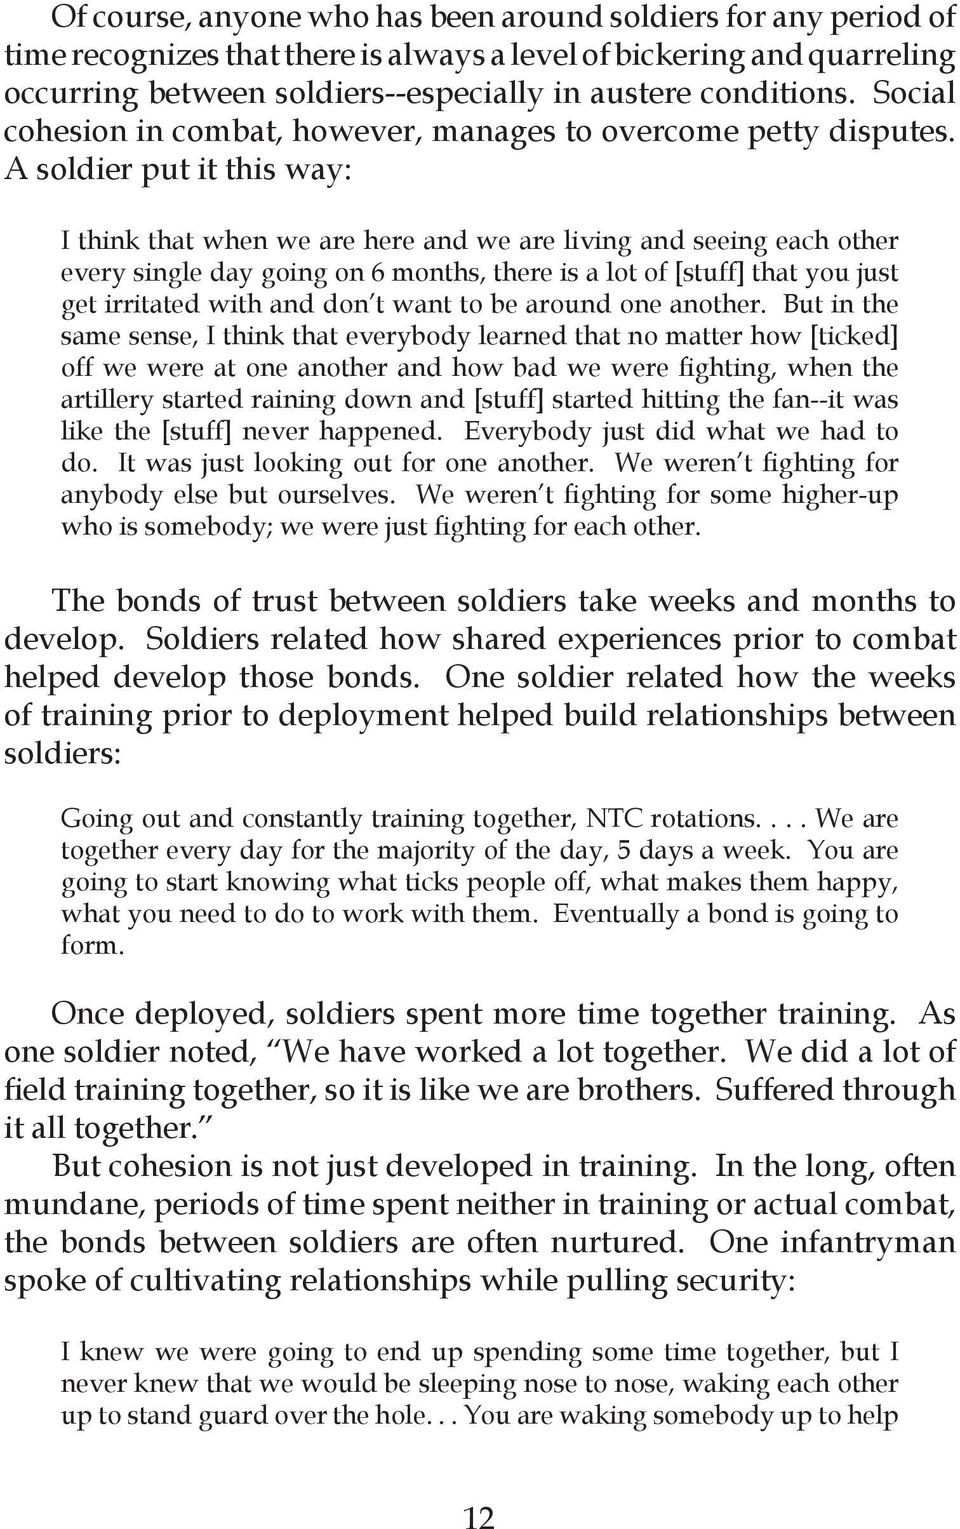 A soldier put it this way: I think that when we are here and we are living and seeing each other every single day going on 6 months, there is a lot of [stuff] that you just get irritated with and don